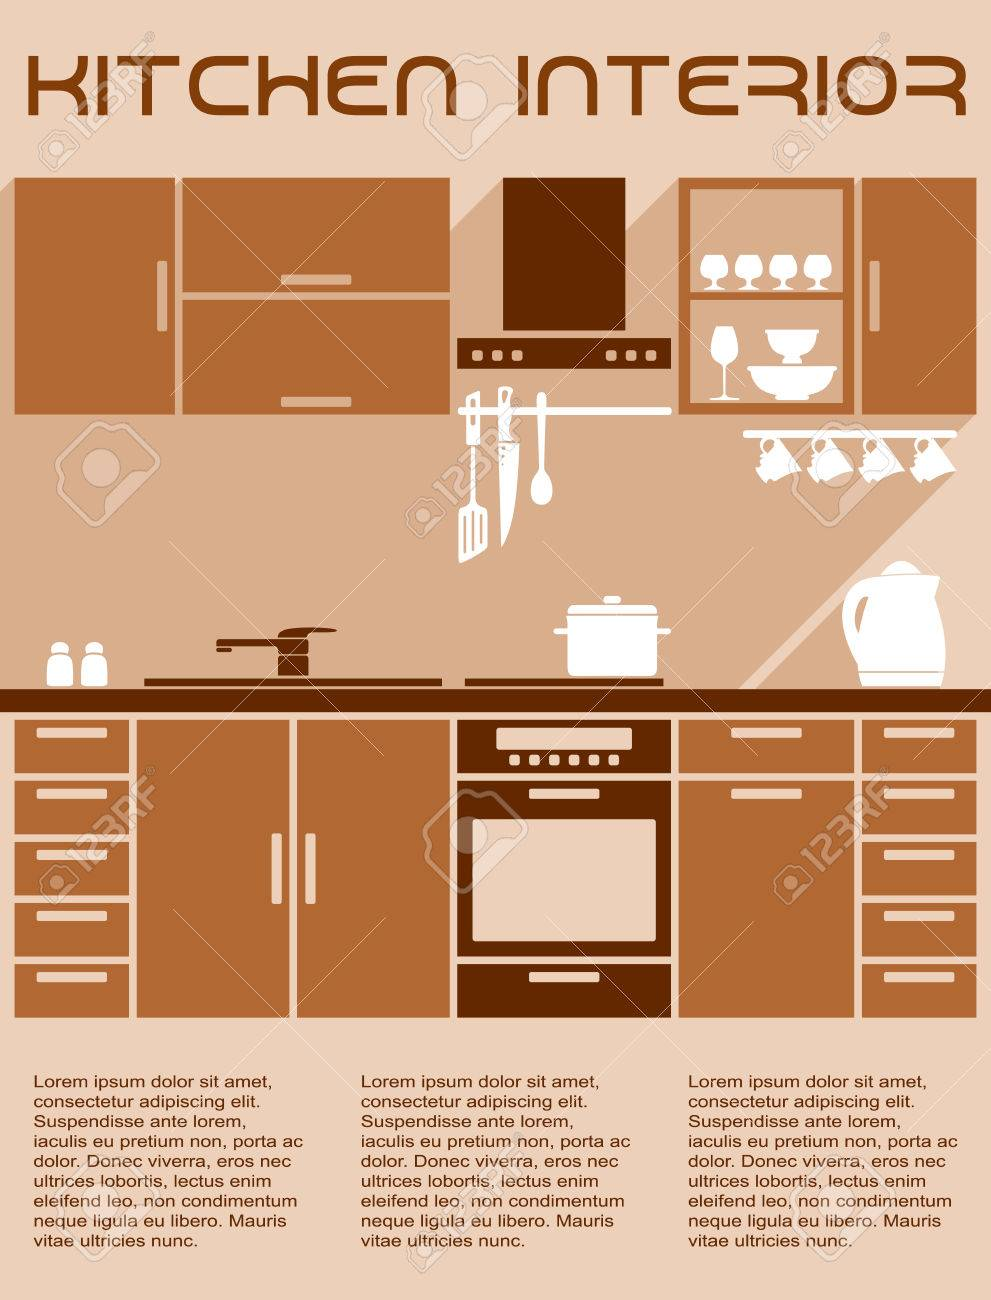 Kitchen Interior Design In Warm Brown And Beige Colors With Work